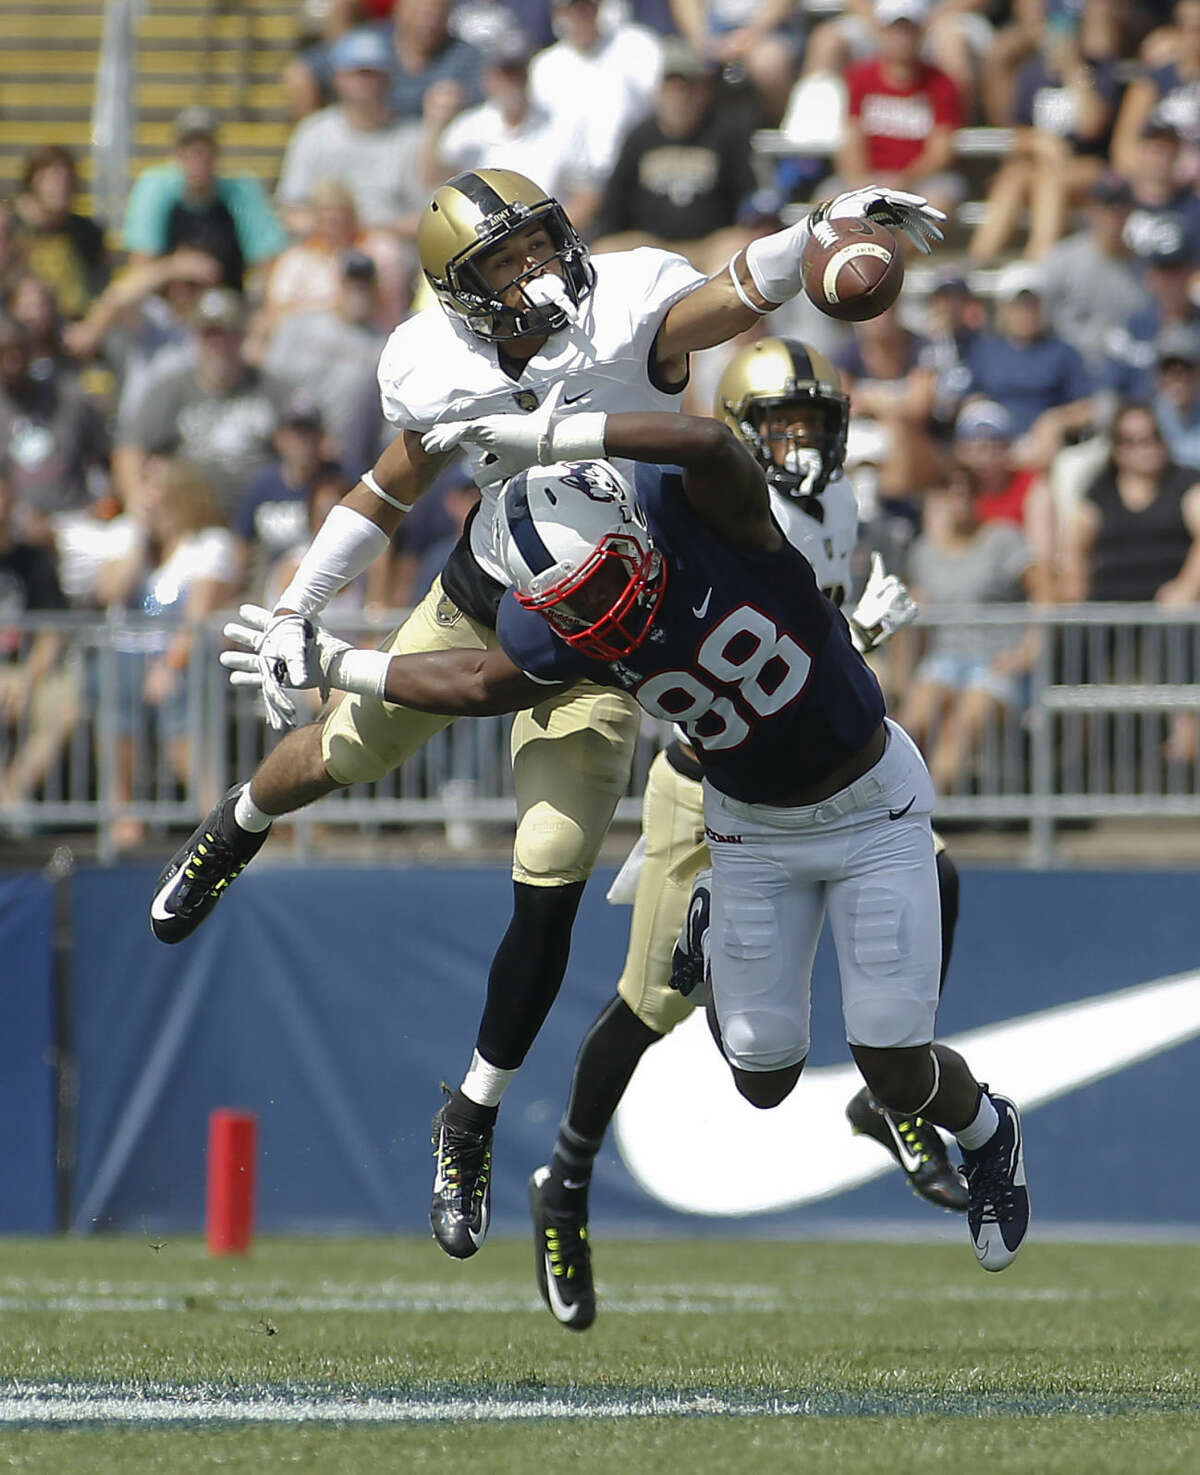 Army defensive back Steven Johnson, top, is called for pass interference on a pass intended for Connecticut wide receiver Hergy Mayala (88) during the second quarter of an NCAA college football game at Rentschler Field, Saturday, Sept. 12, 2015, in East Hartford, Conn. (AP Photo/Stew Milne)